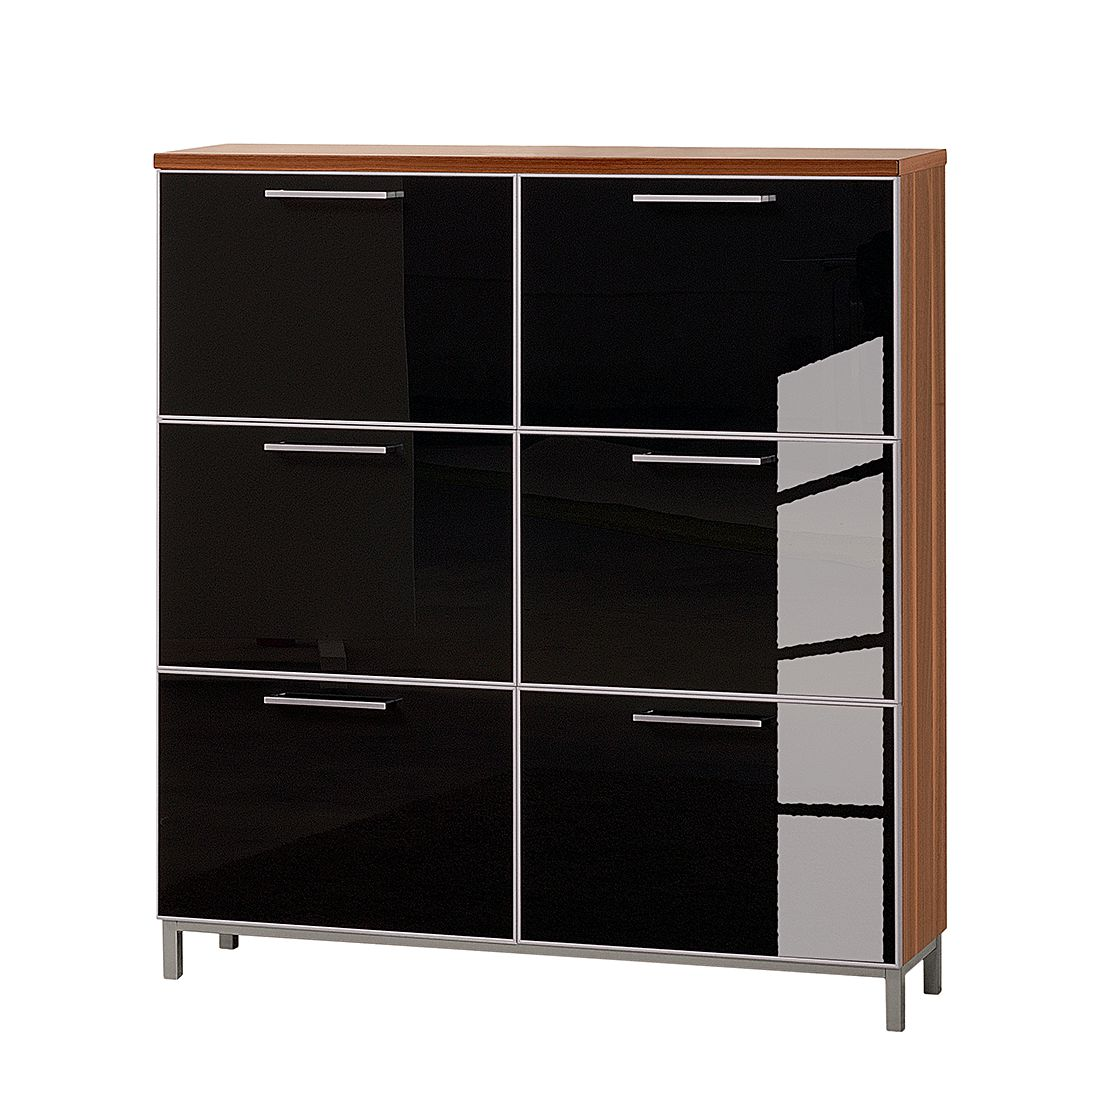 schuhschrank alves vi nussbaum glas anthrazit tiefe 20 cm f r. Black Bedroom Furniture Sets. Home Design Ideas